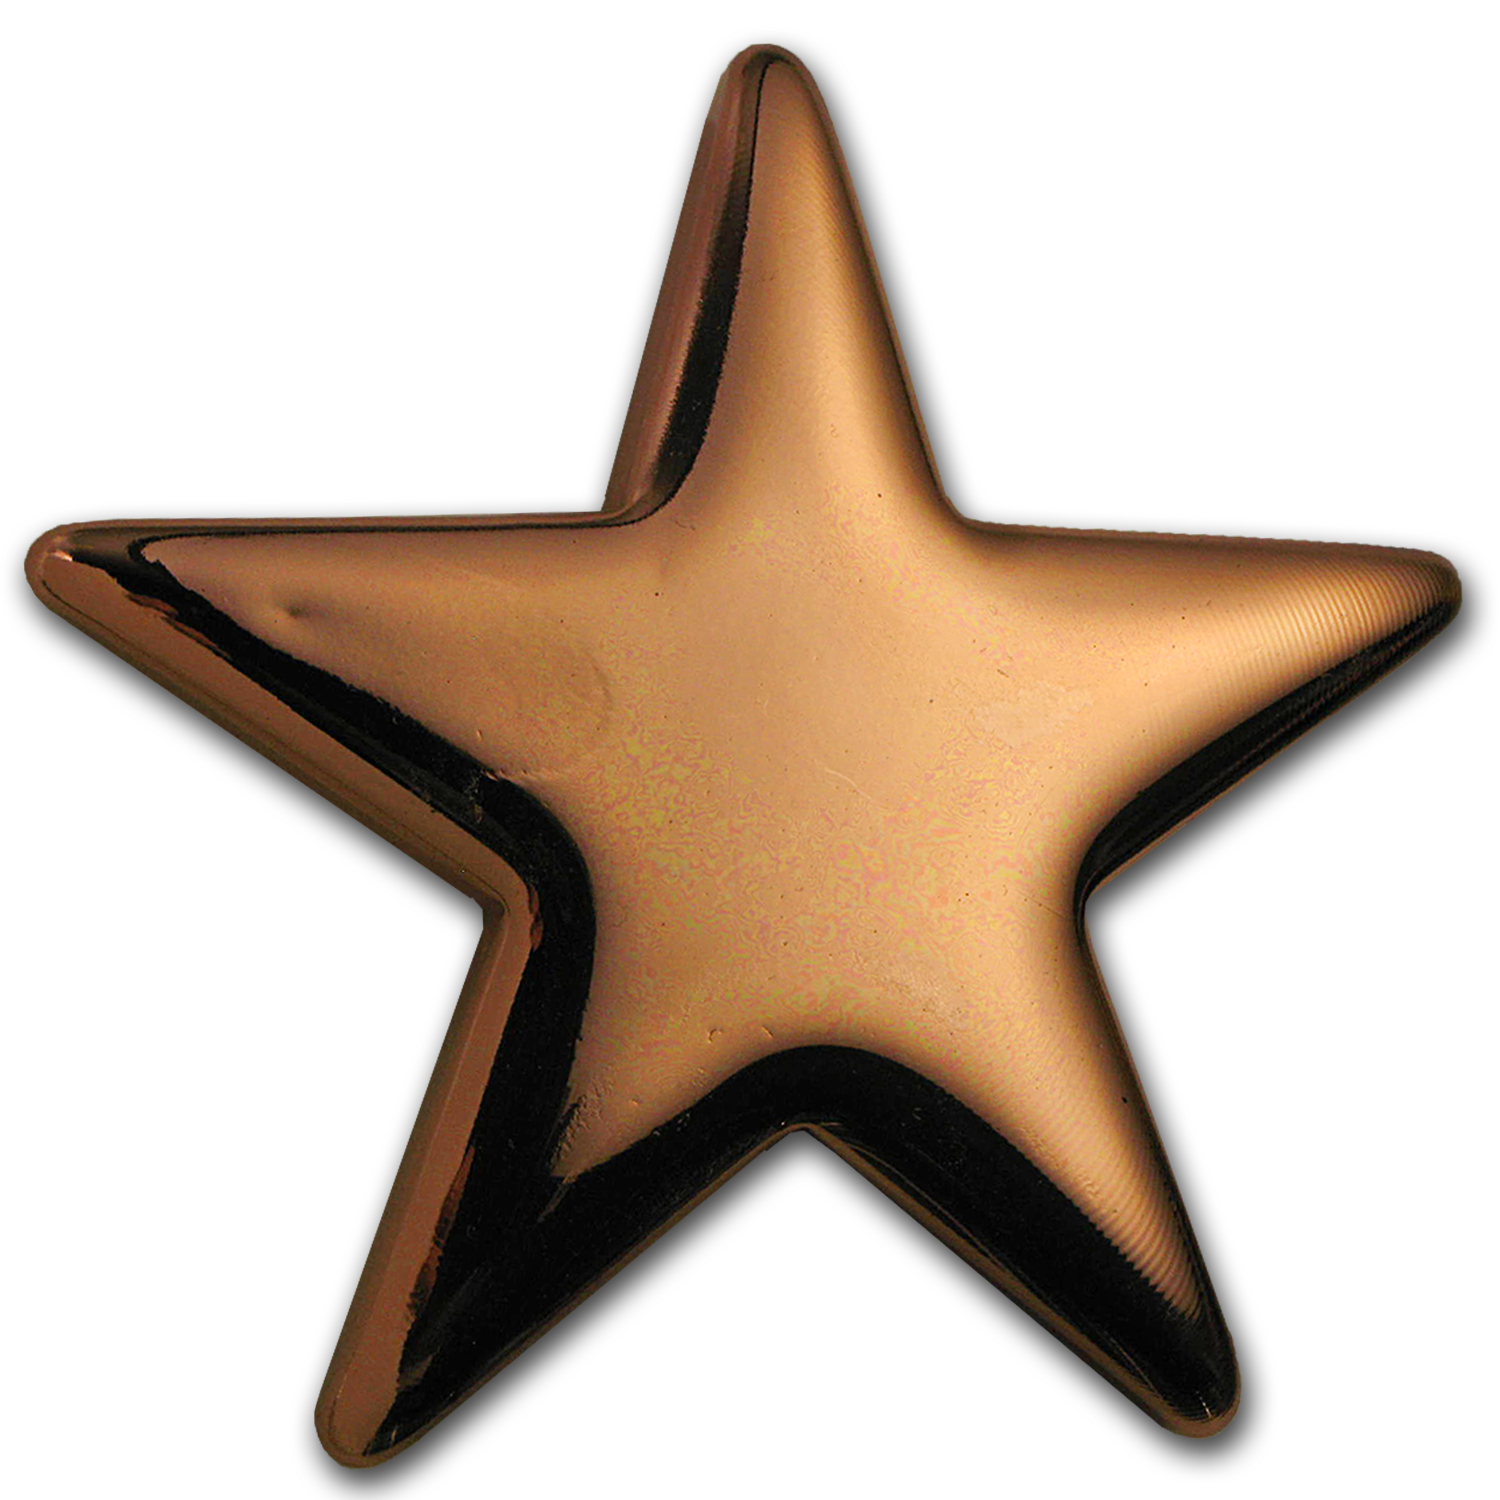 500 gram Copper Star Bar - Geiger Edelmetalle